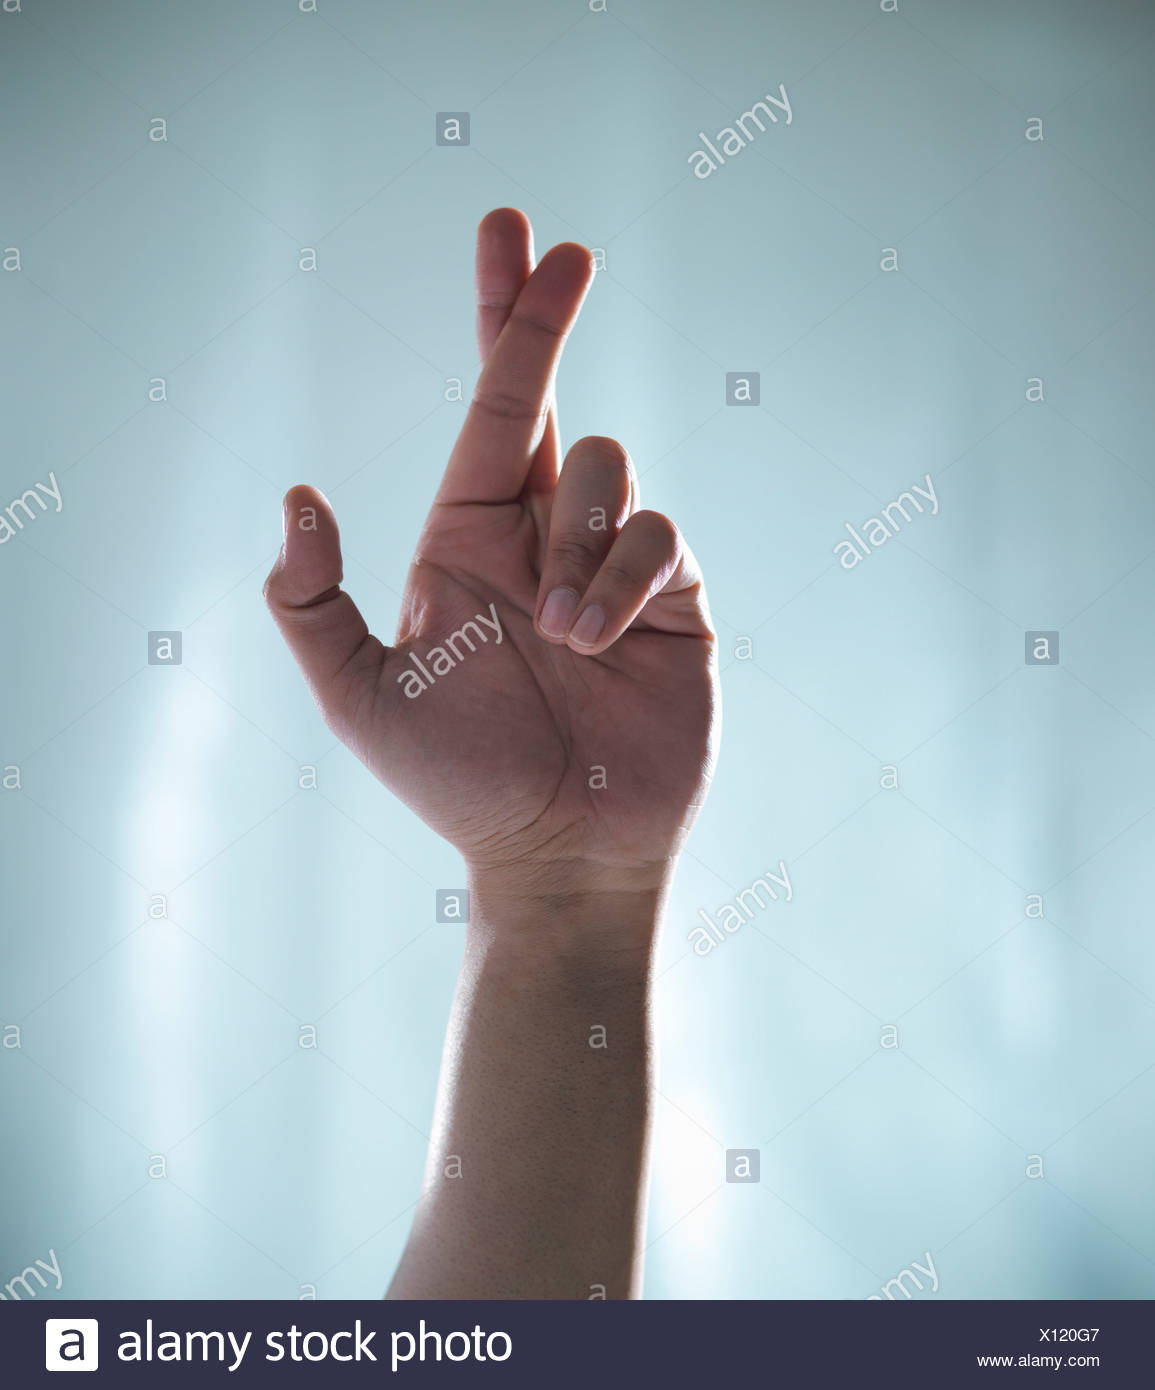 Close up of hand with crossed fingers - Stock Image